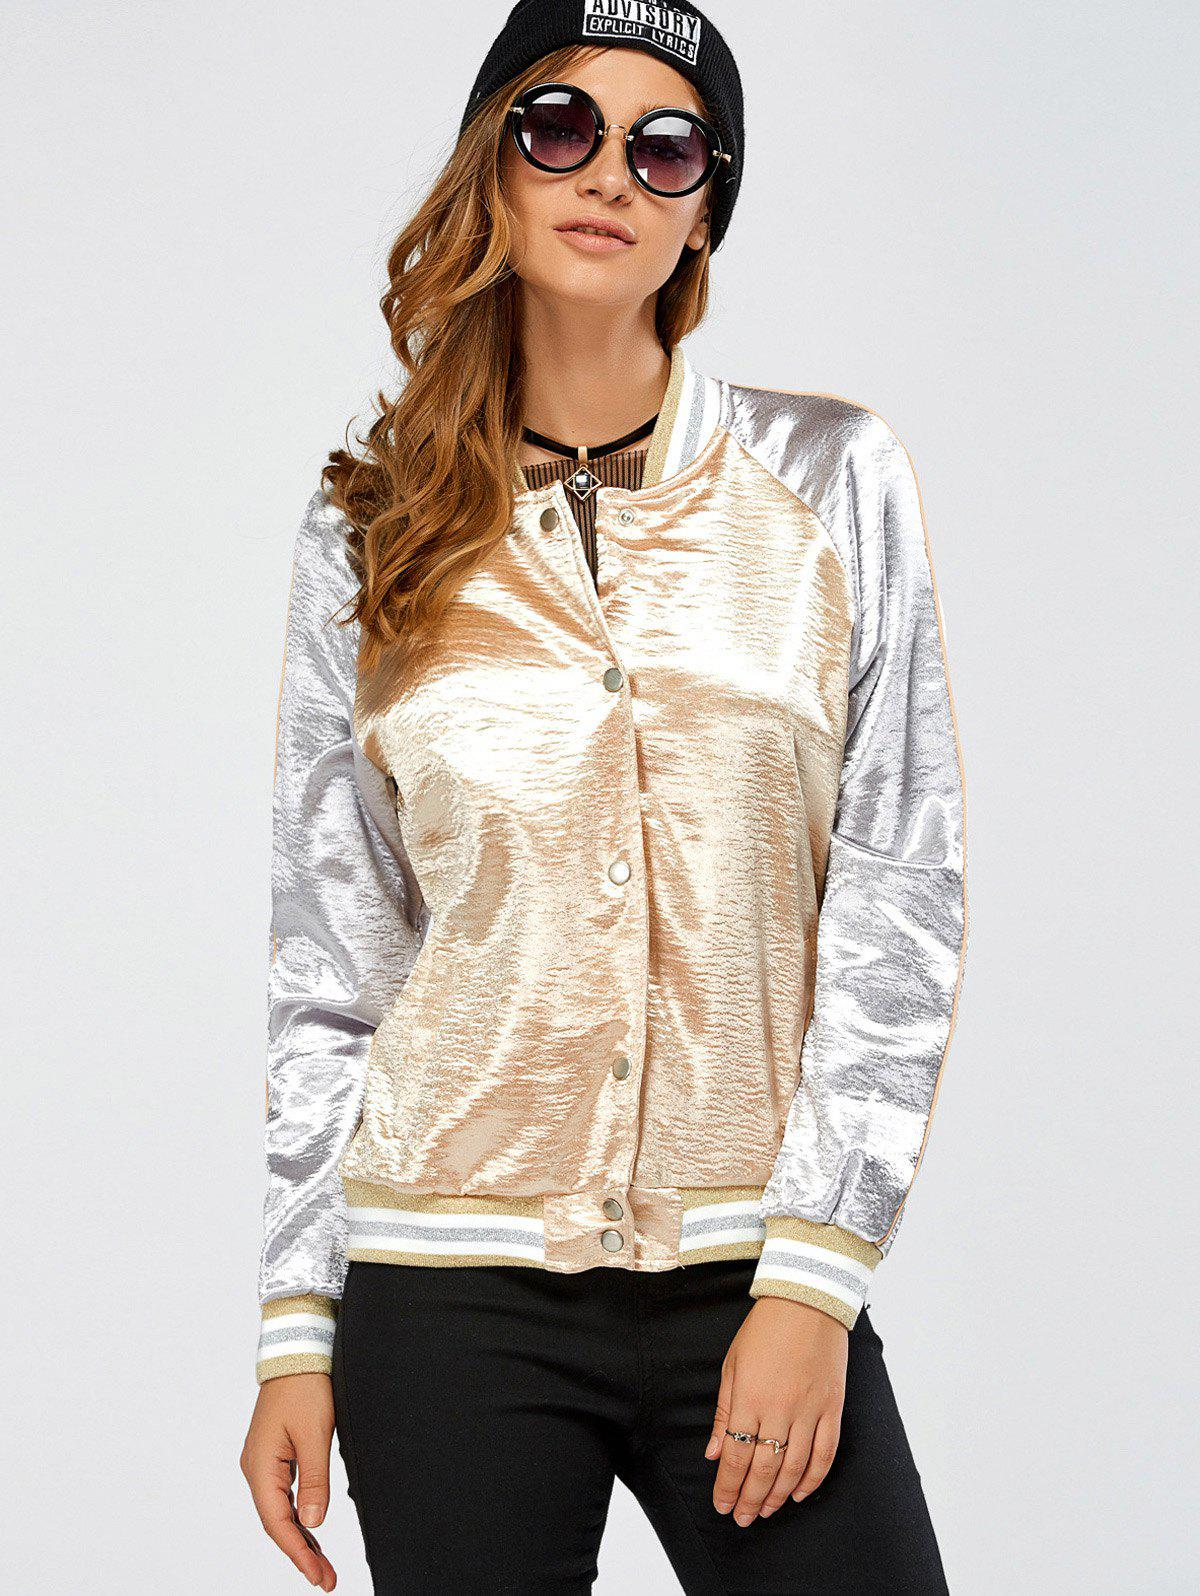 Autumn Lurex Color Block Baseball Jacket - Or S